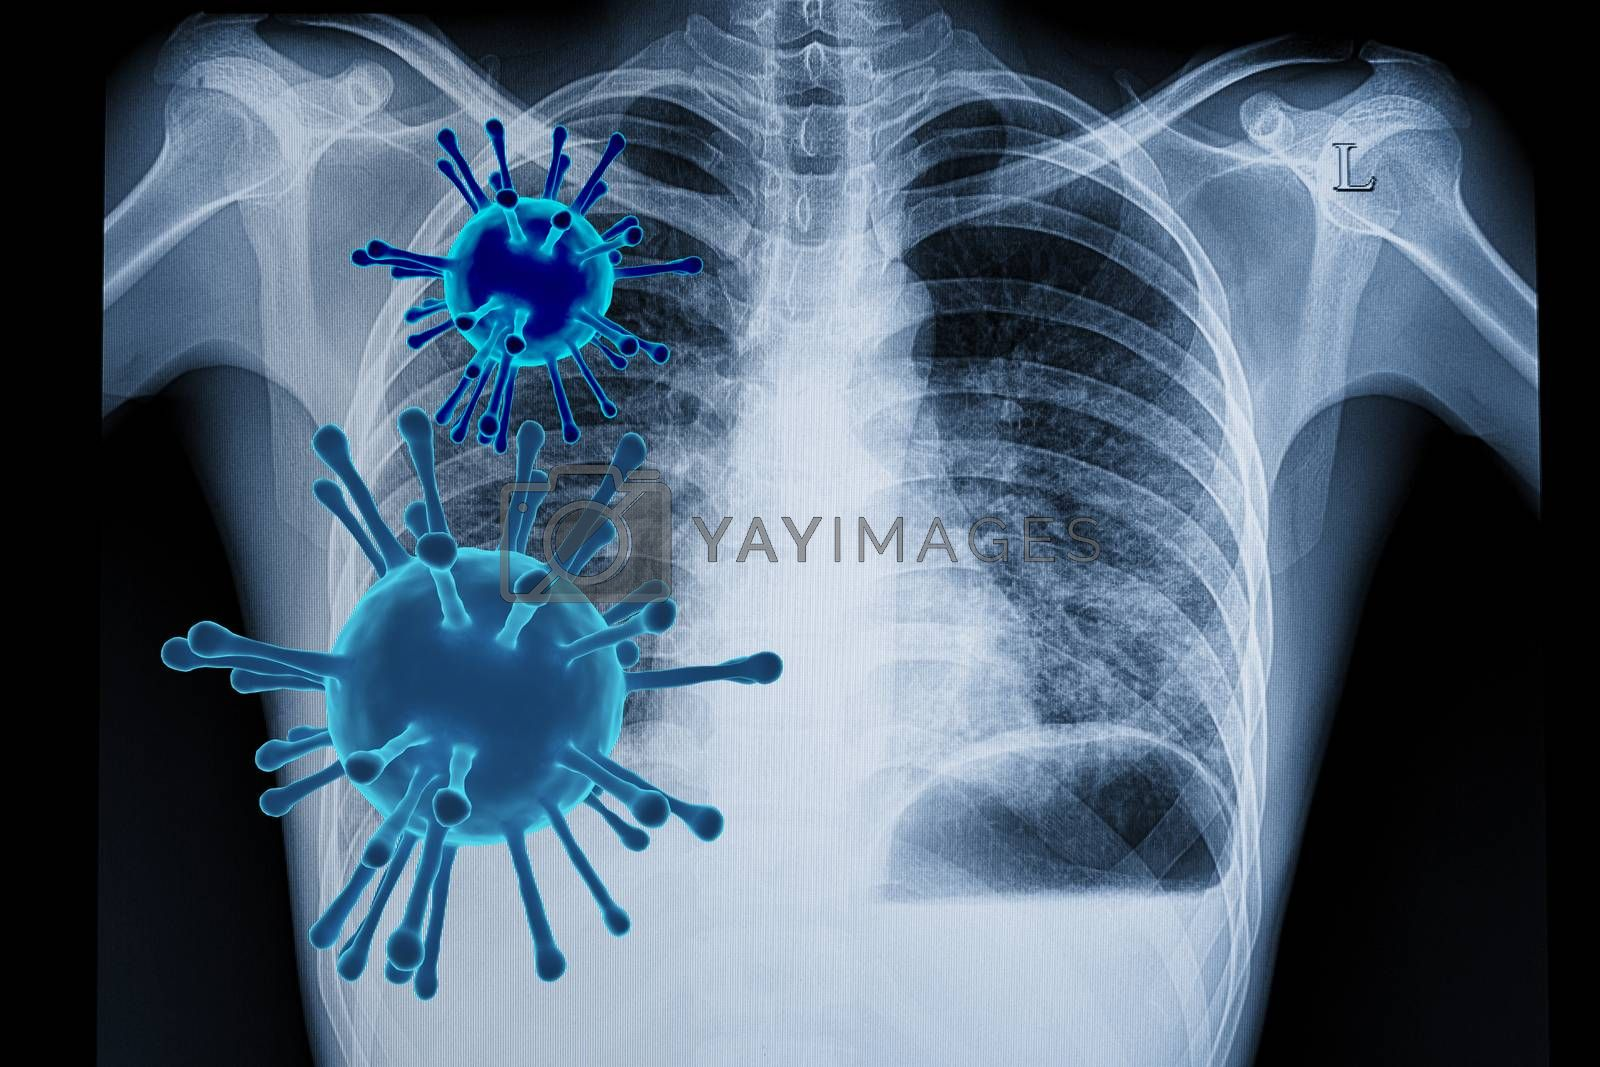 Visual illustration of coronavirus (covid-19) infection in the lungs with 3D rendered viral particles and a chest xray film of a patient with bilateral lower lungs pneumonia.